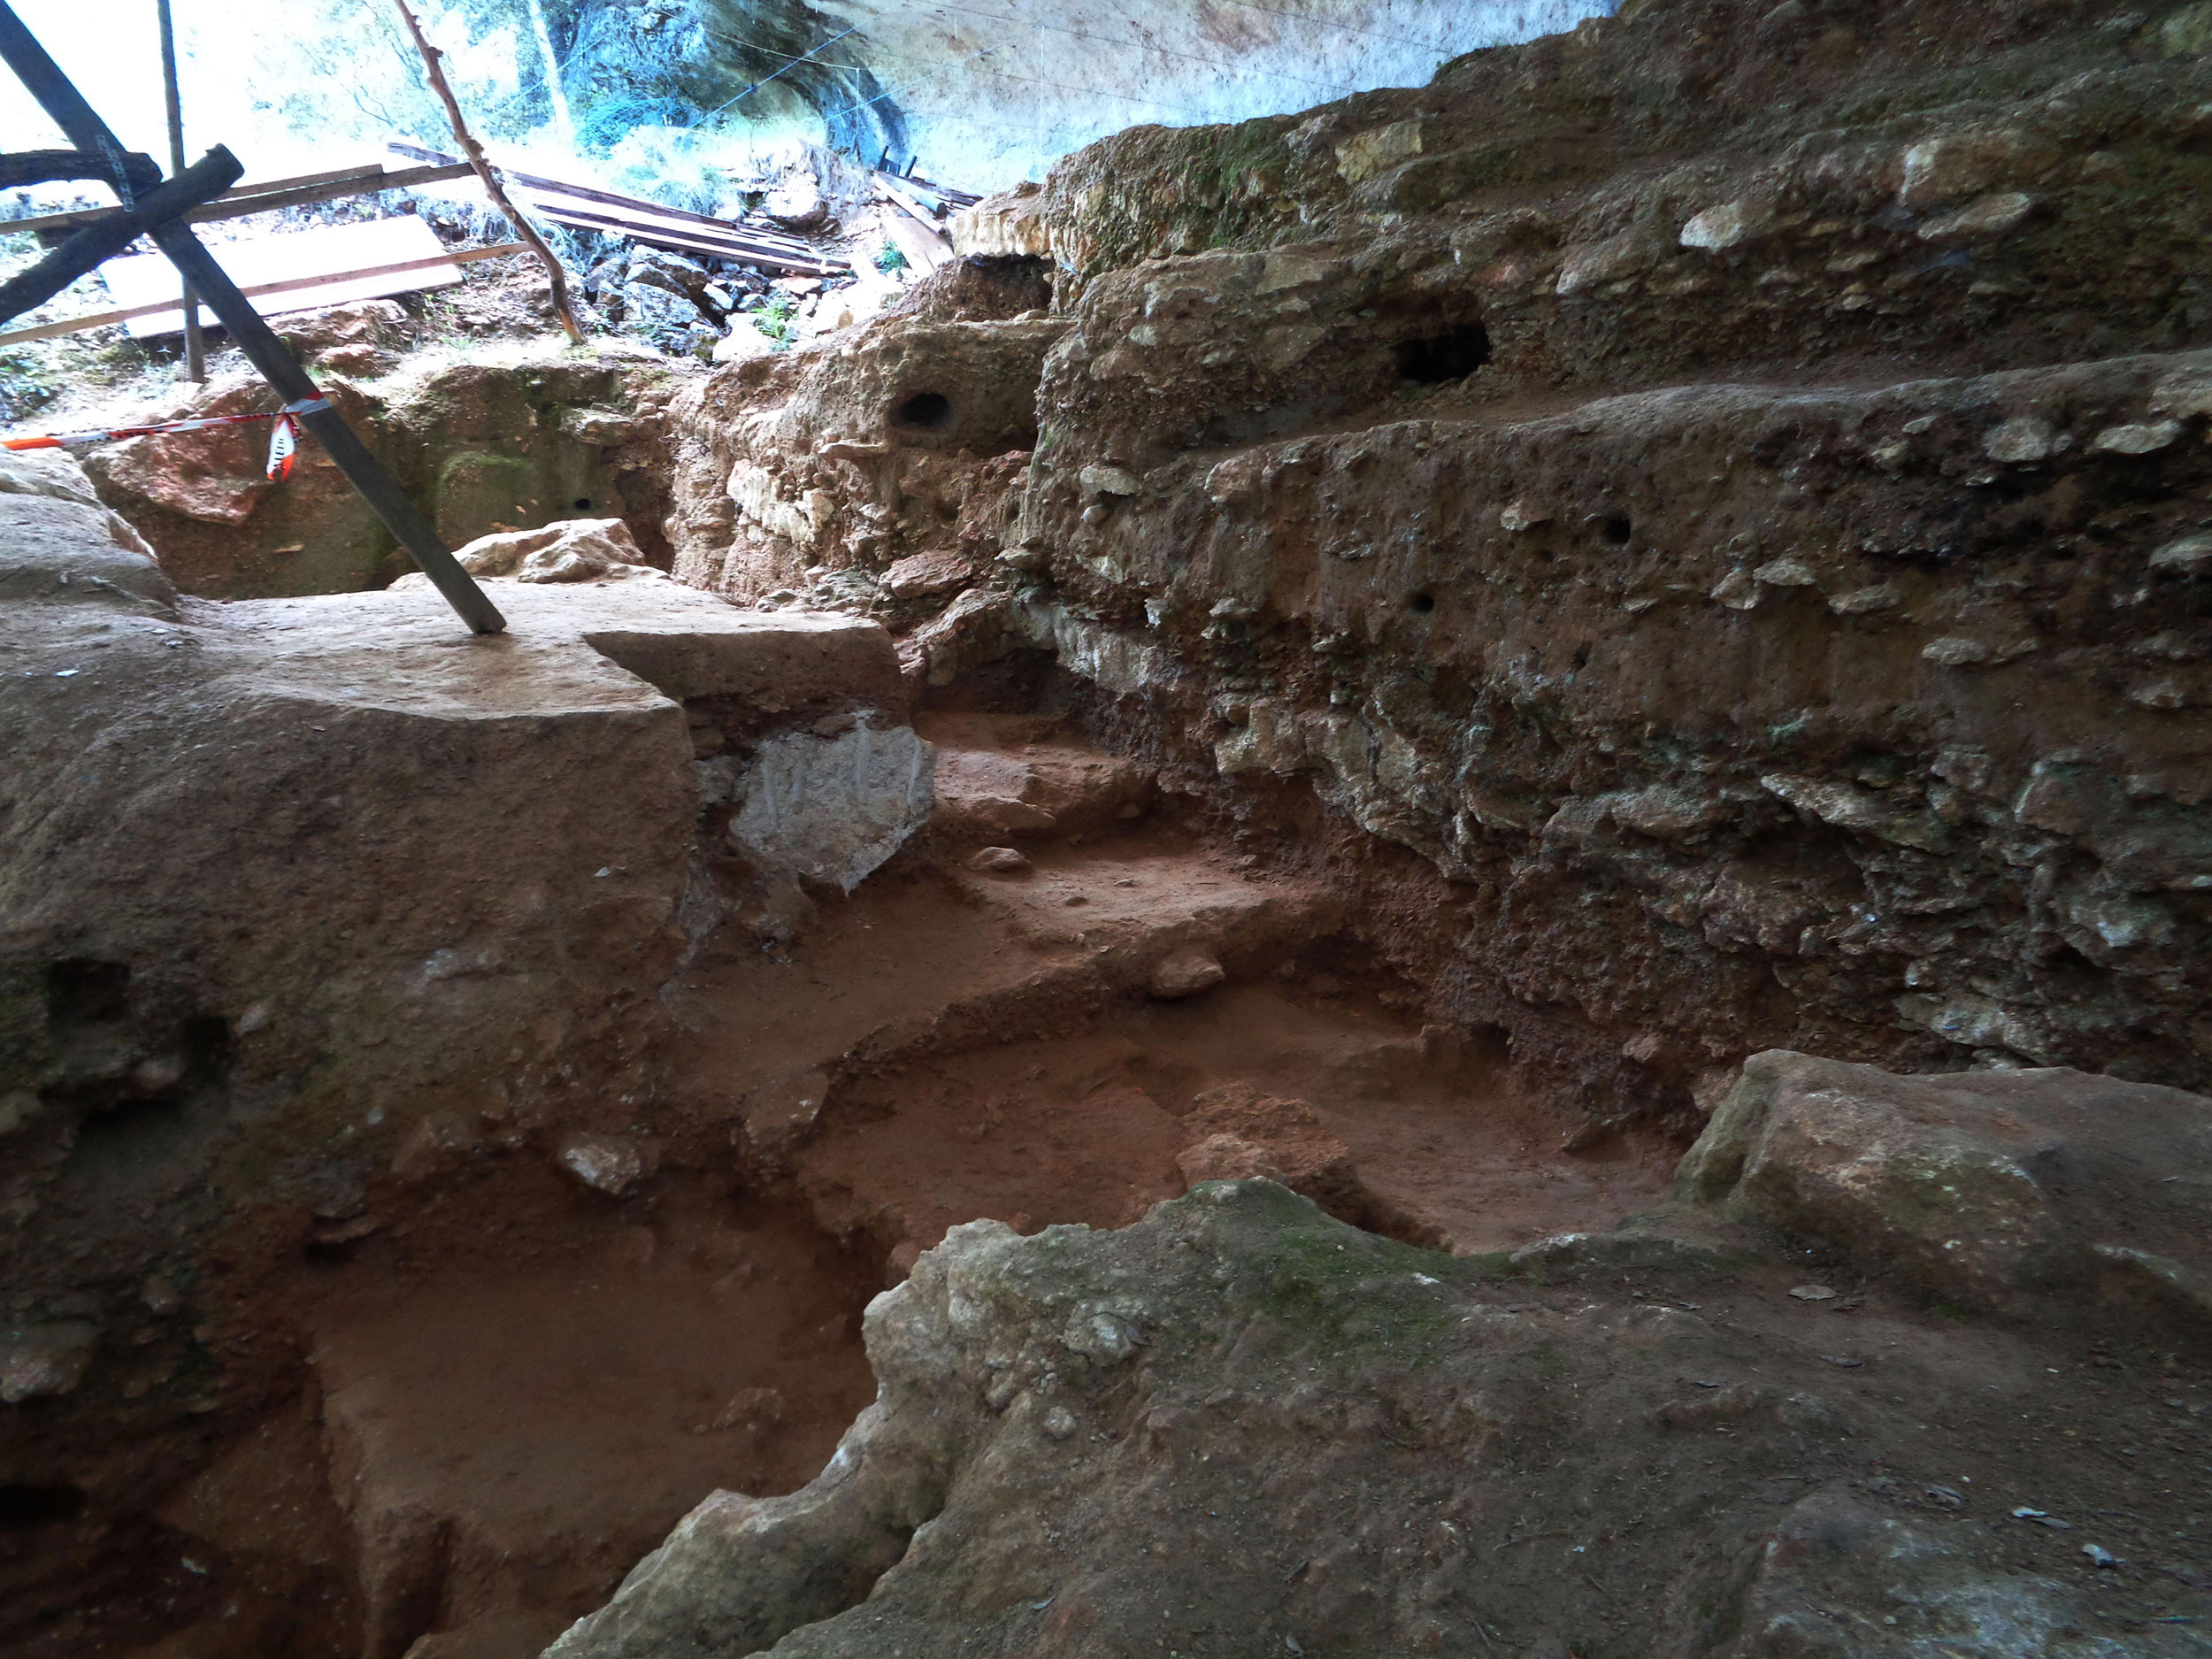 The site where the thread fragment was excavated in Abri du Maras, southern France.